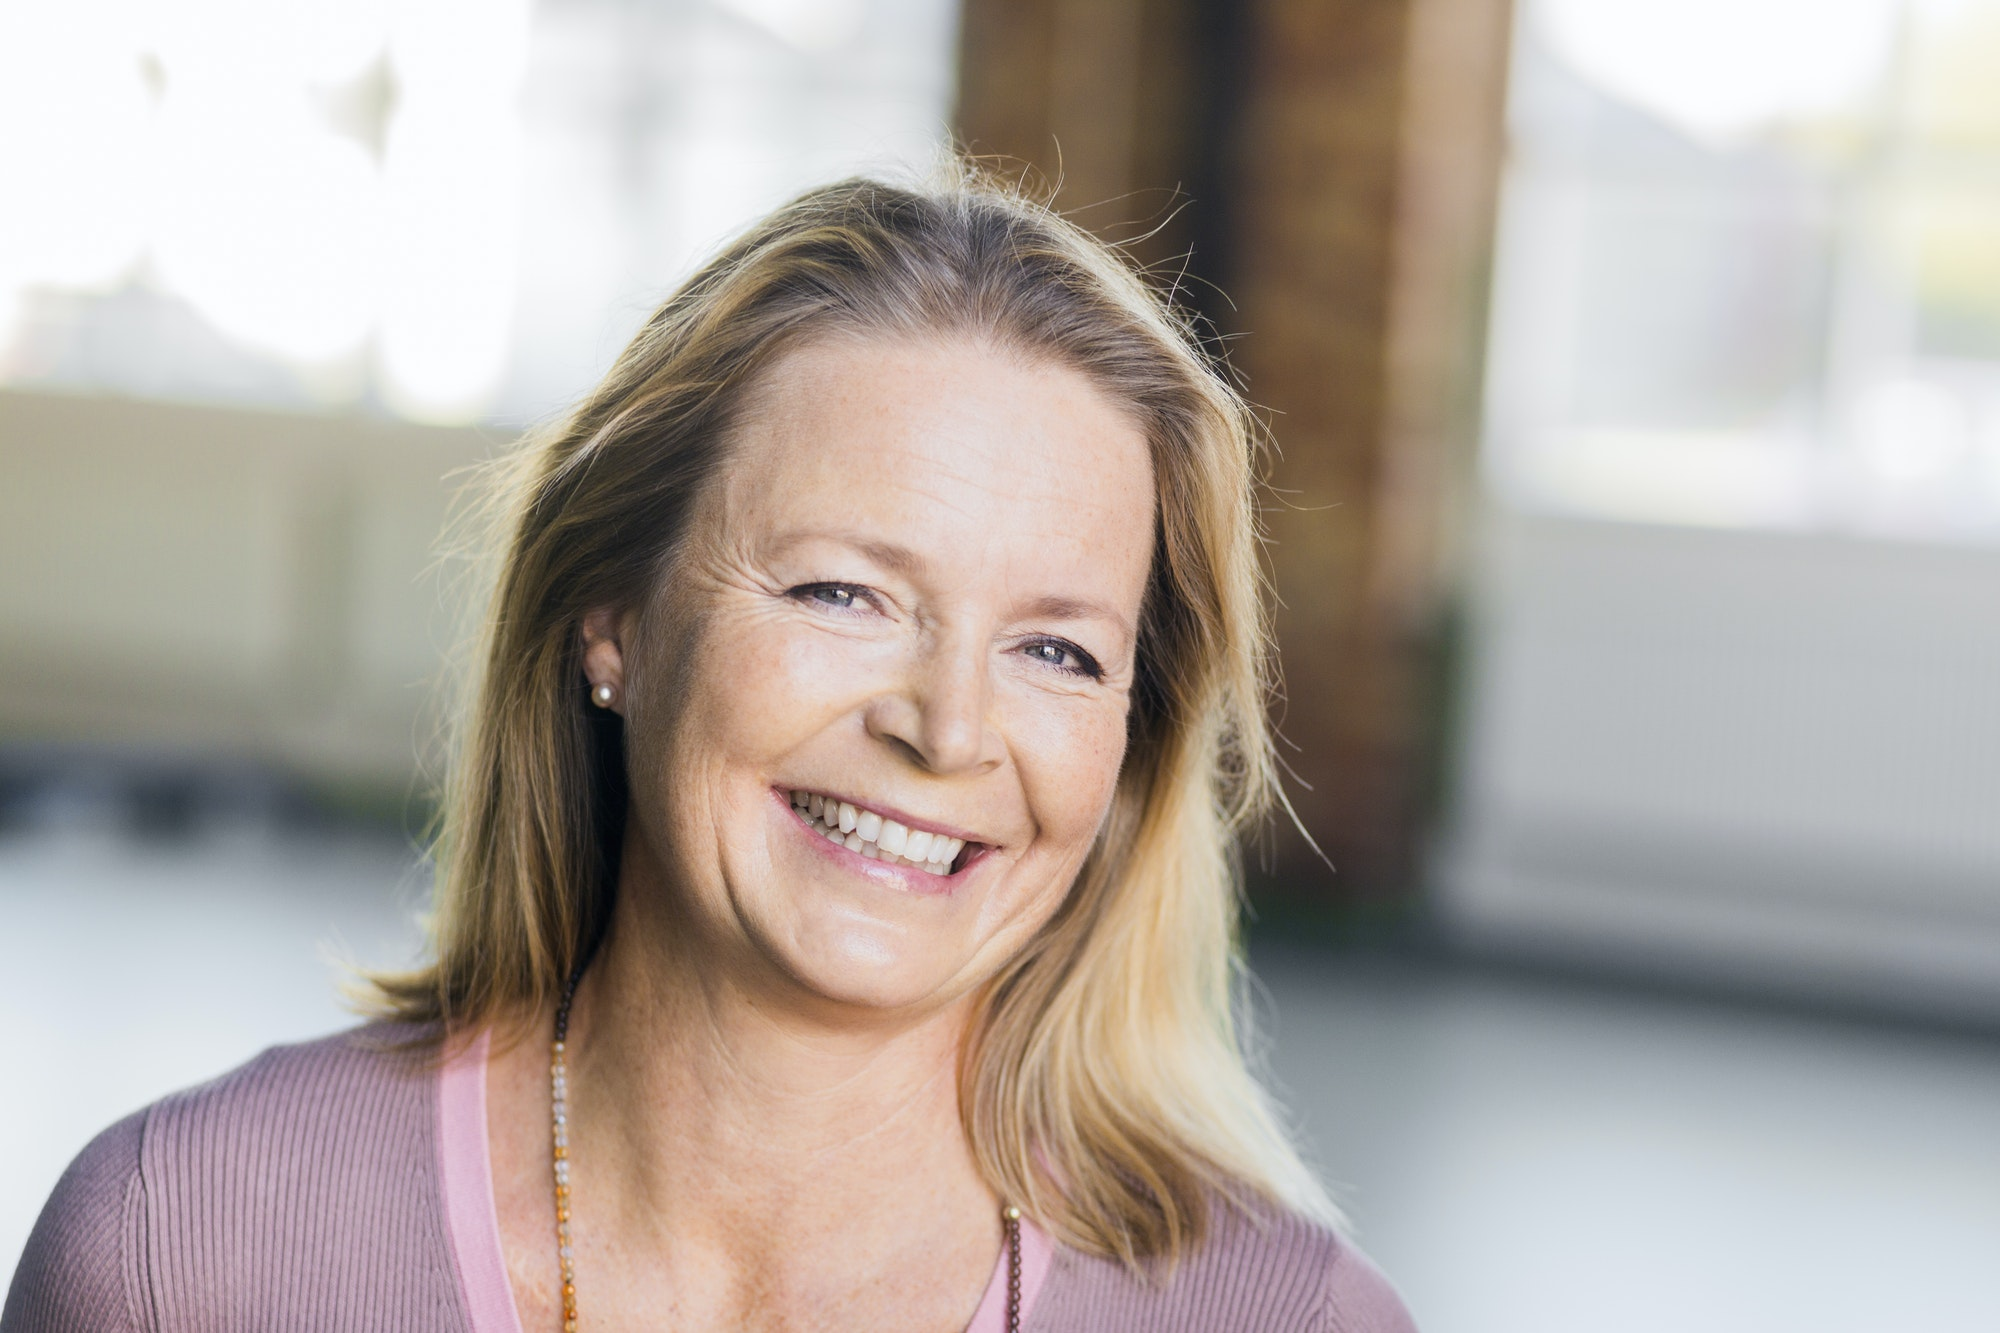 Portrait of mature woman smiling in gym